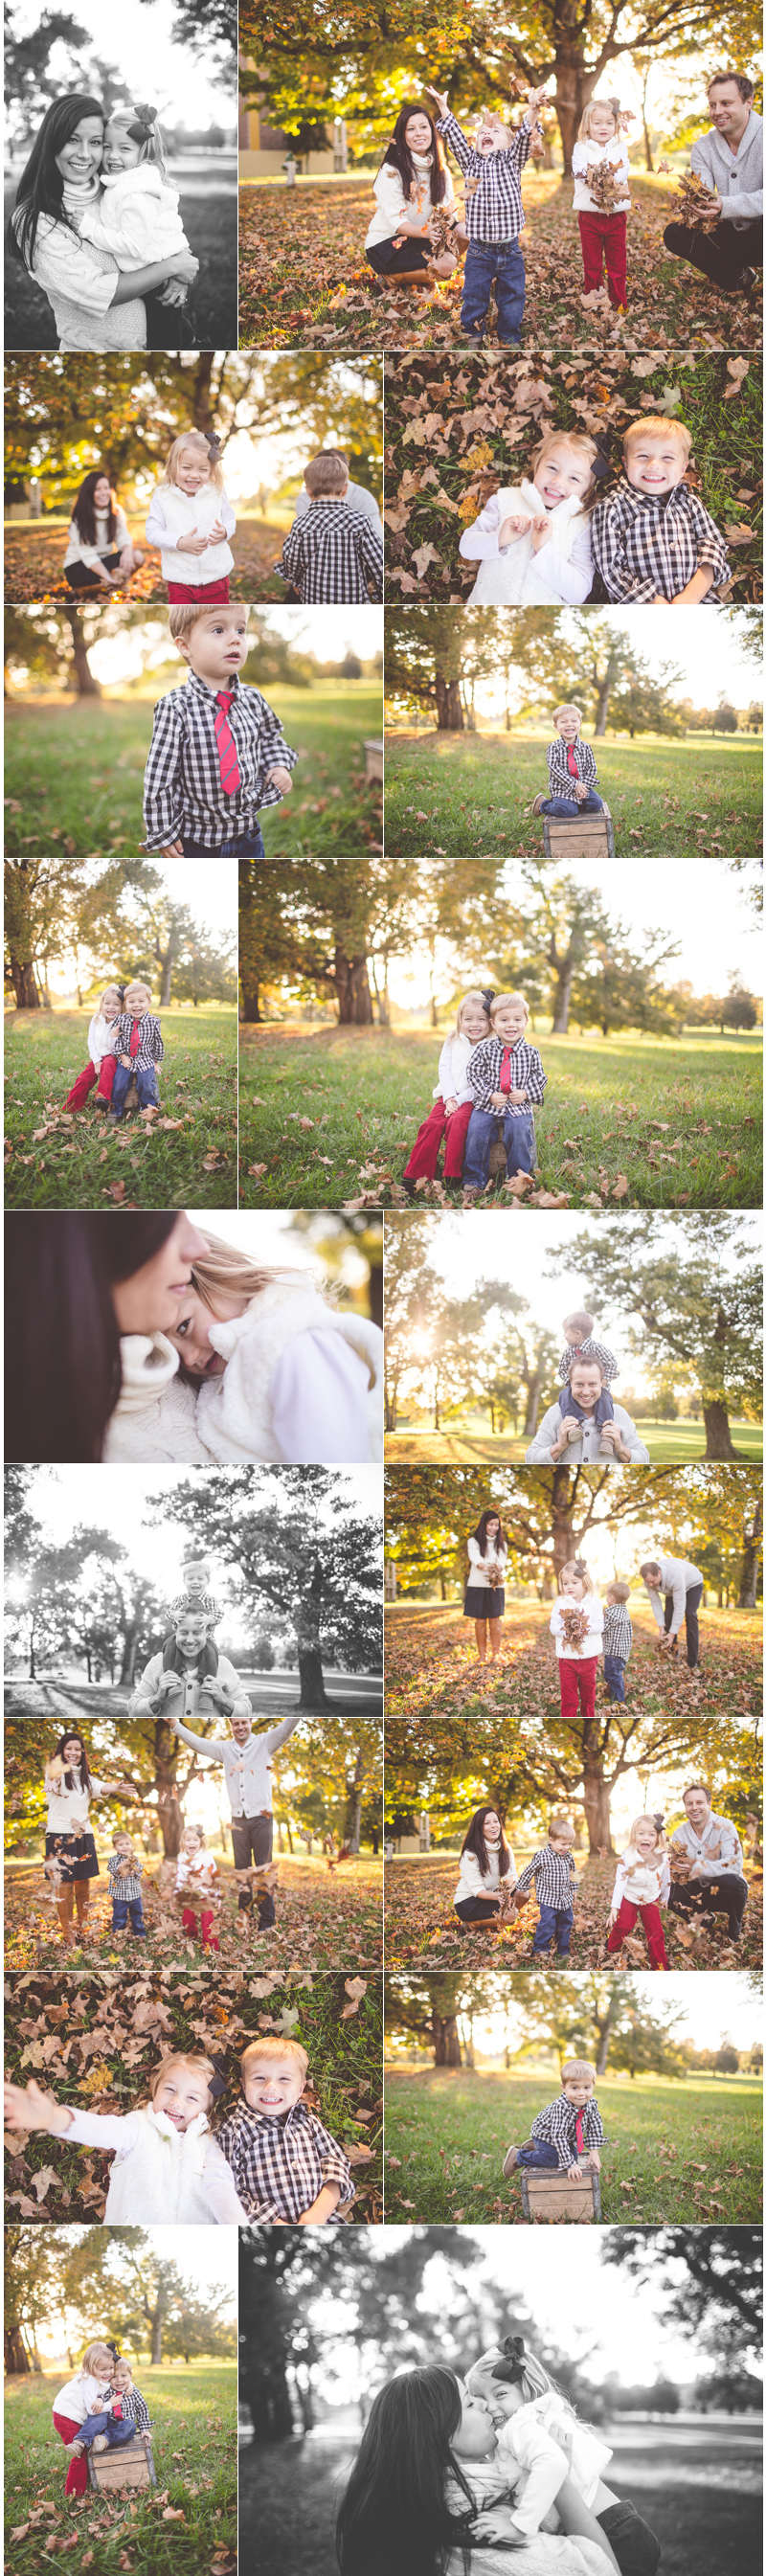 nashville-tennessee-family-photographer-sara-e-rose-photography-02